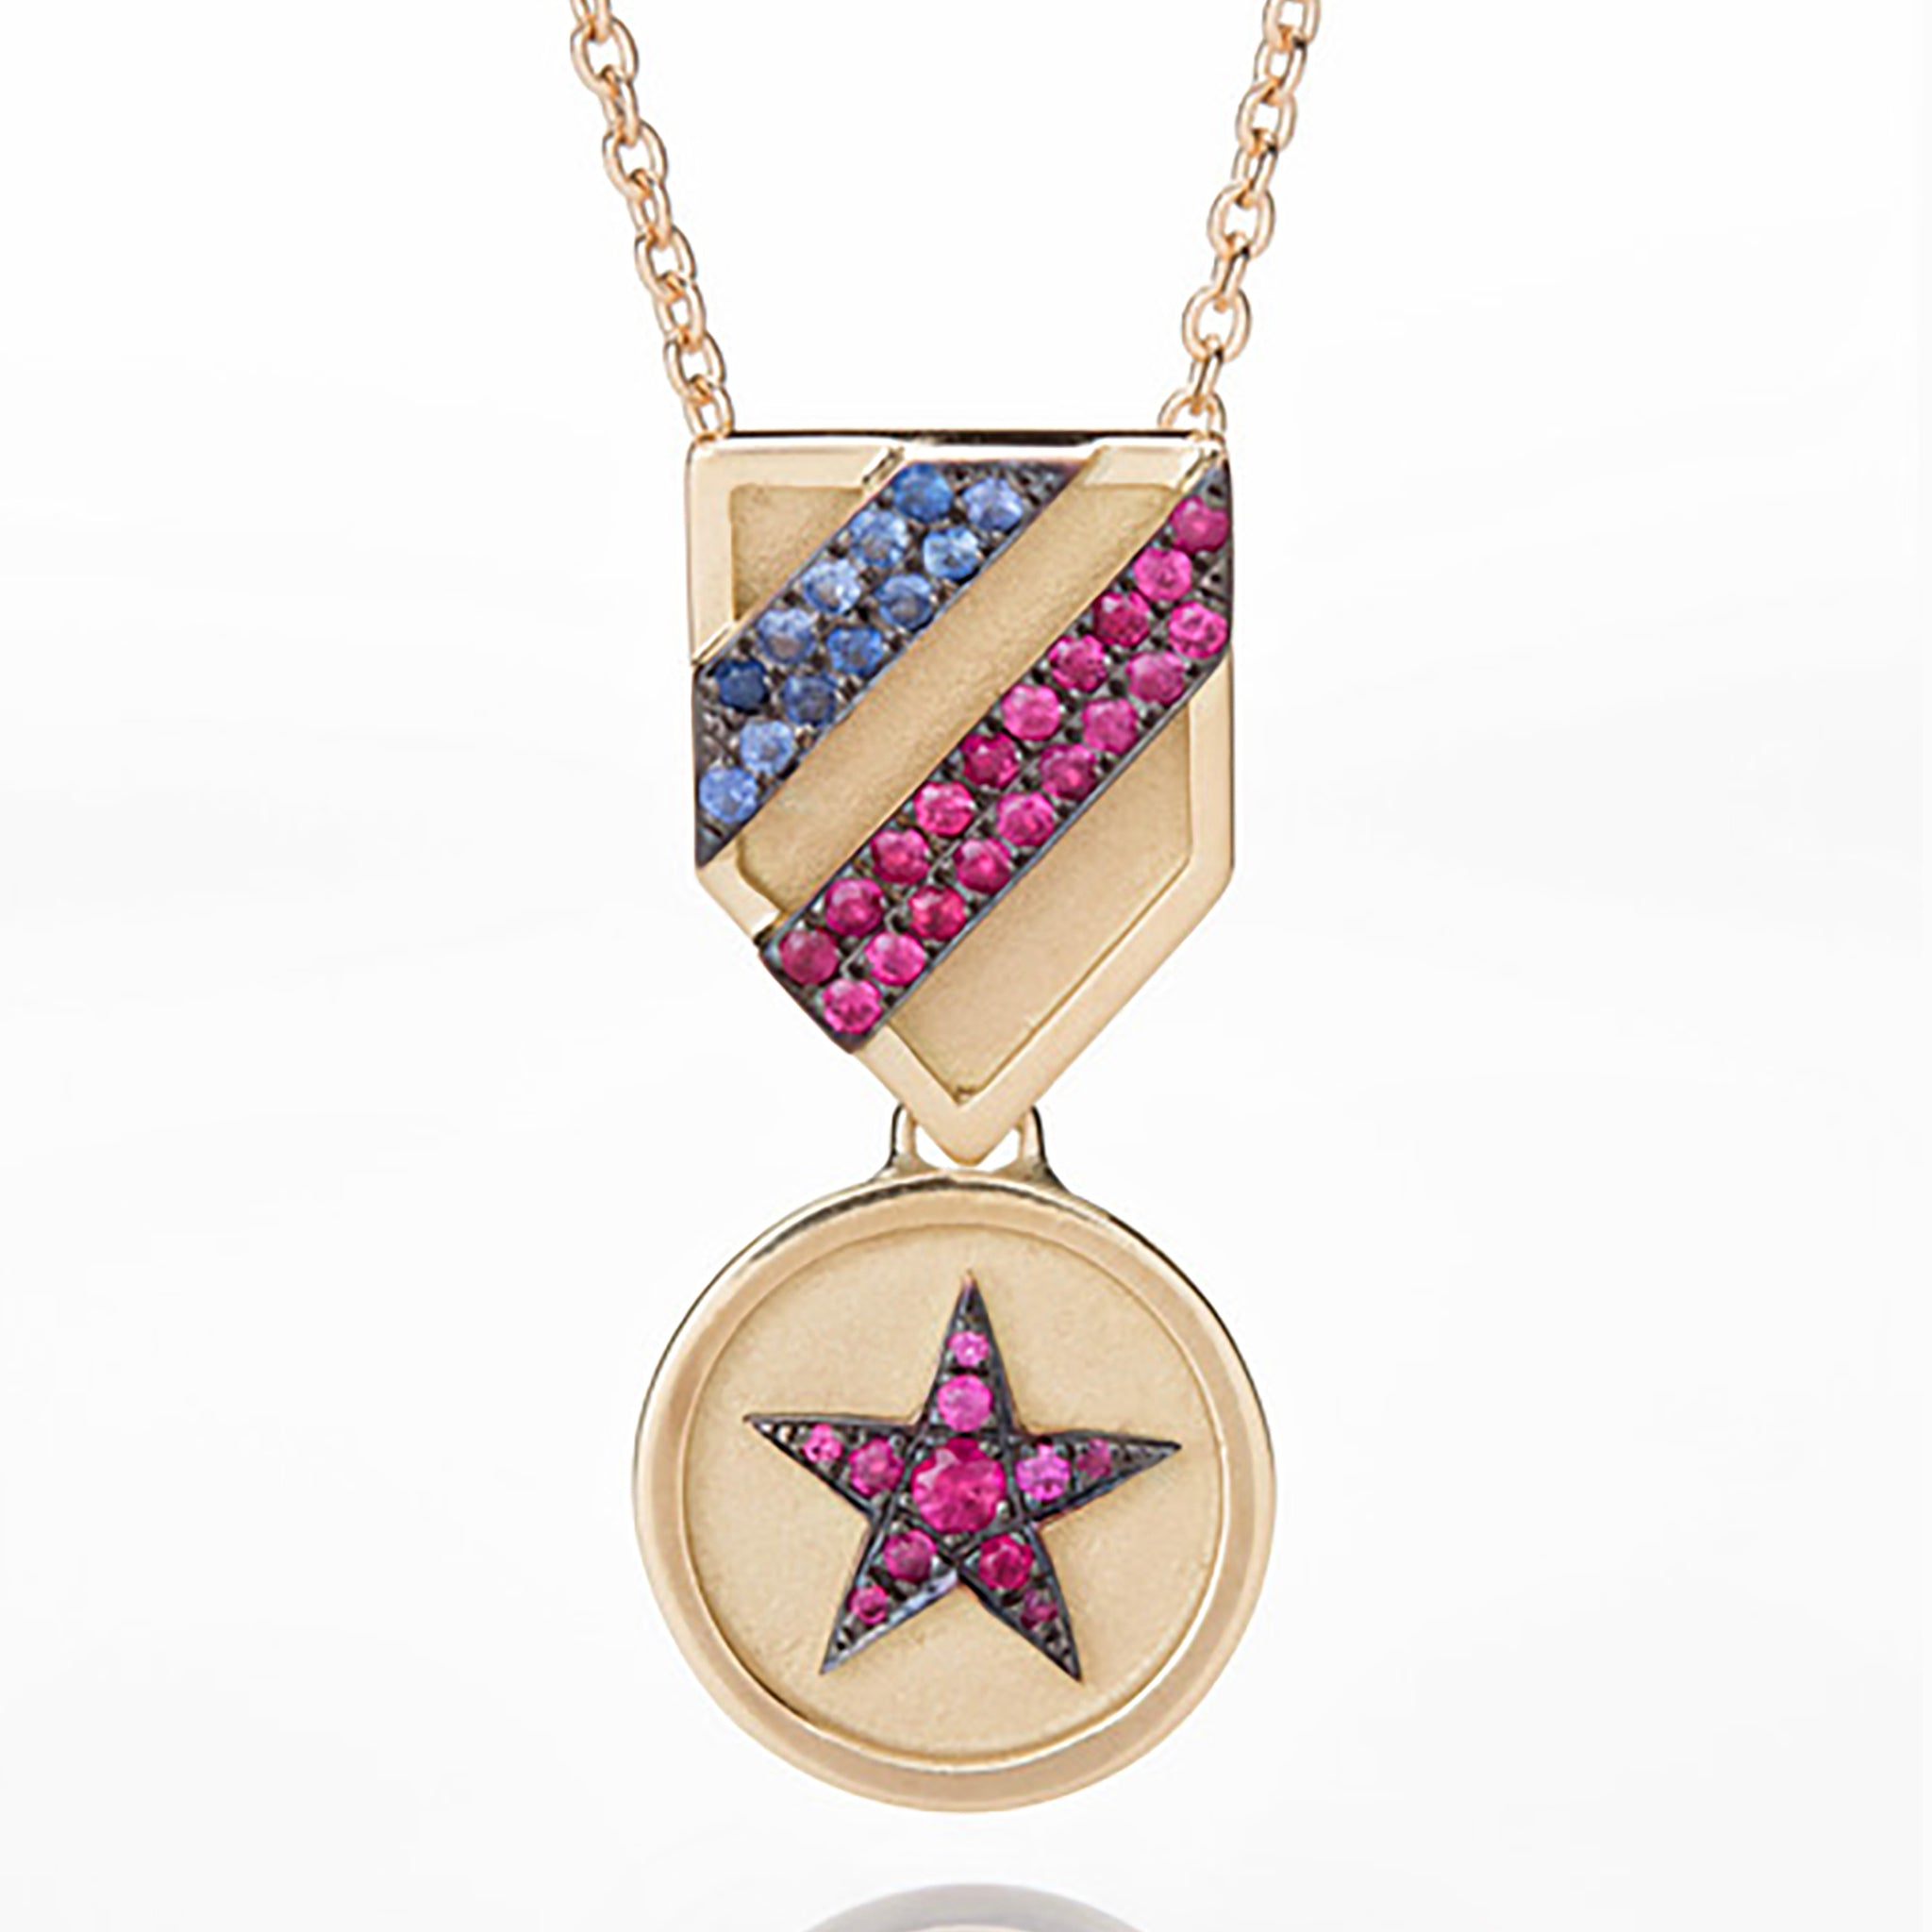 RUBY STAR MEDAL NECKLACE